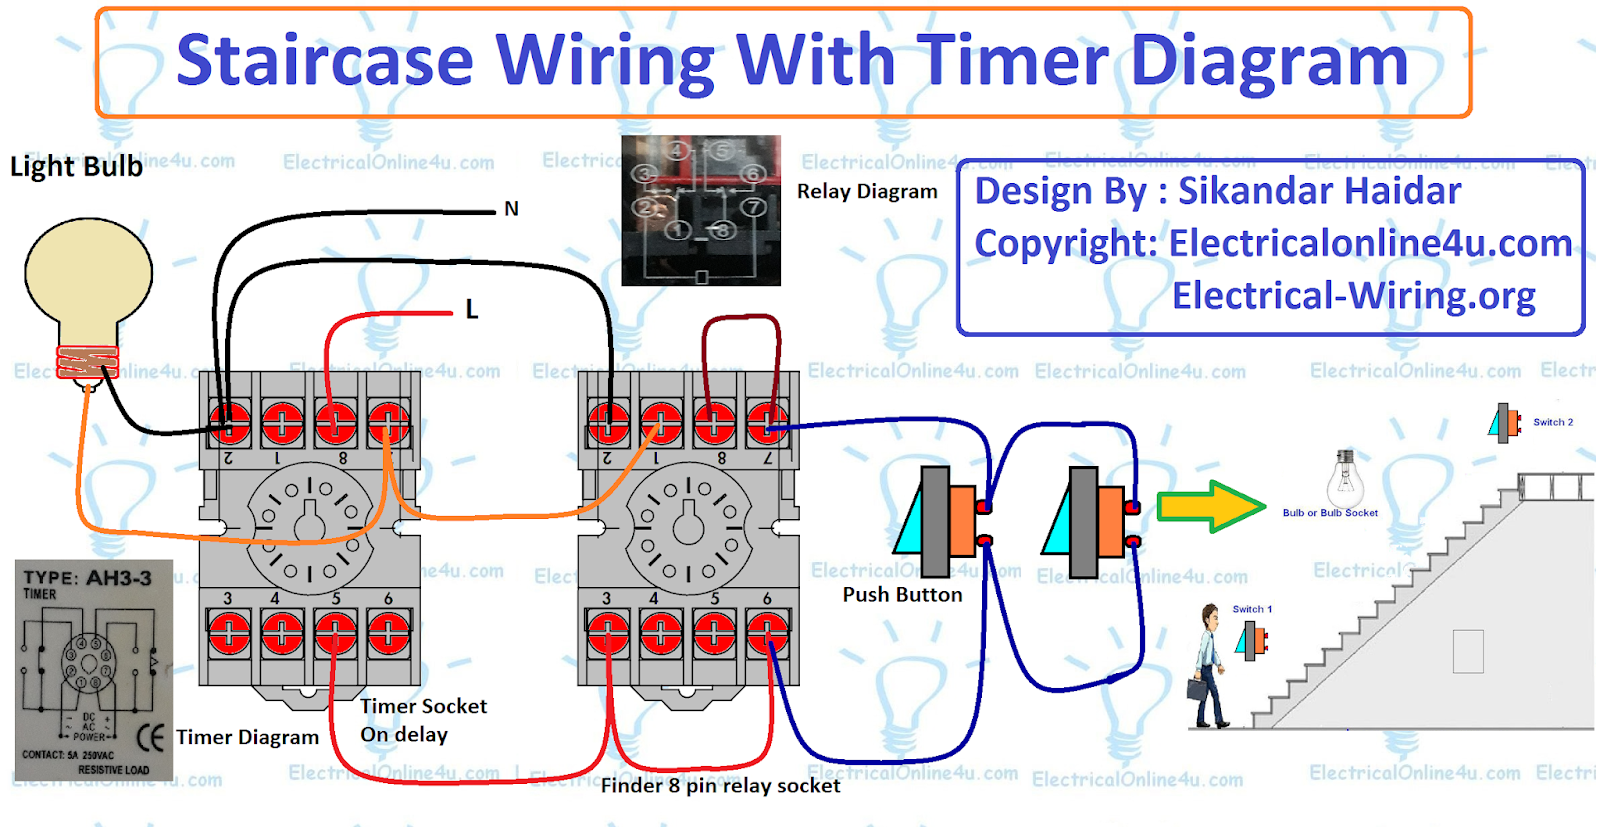 Wiring Fan Timer Switch Switches Diagrams Free Diagram For You This Post Is About The Staircase In Rh Pinterest Com Digital